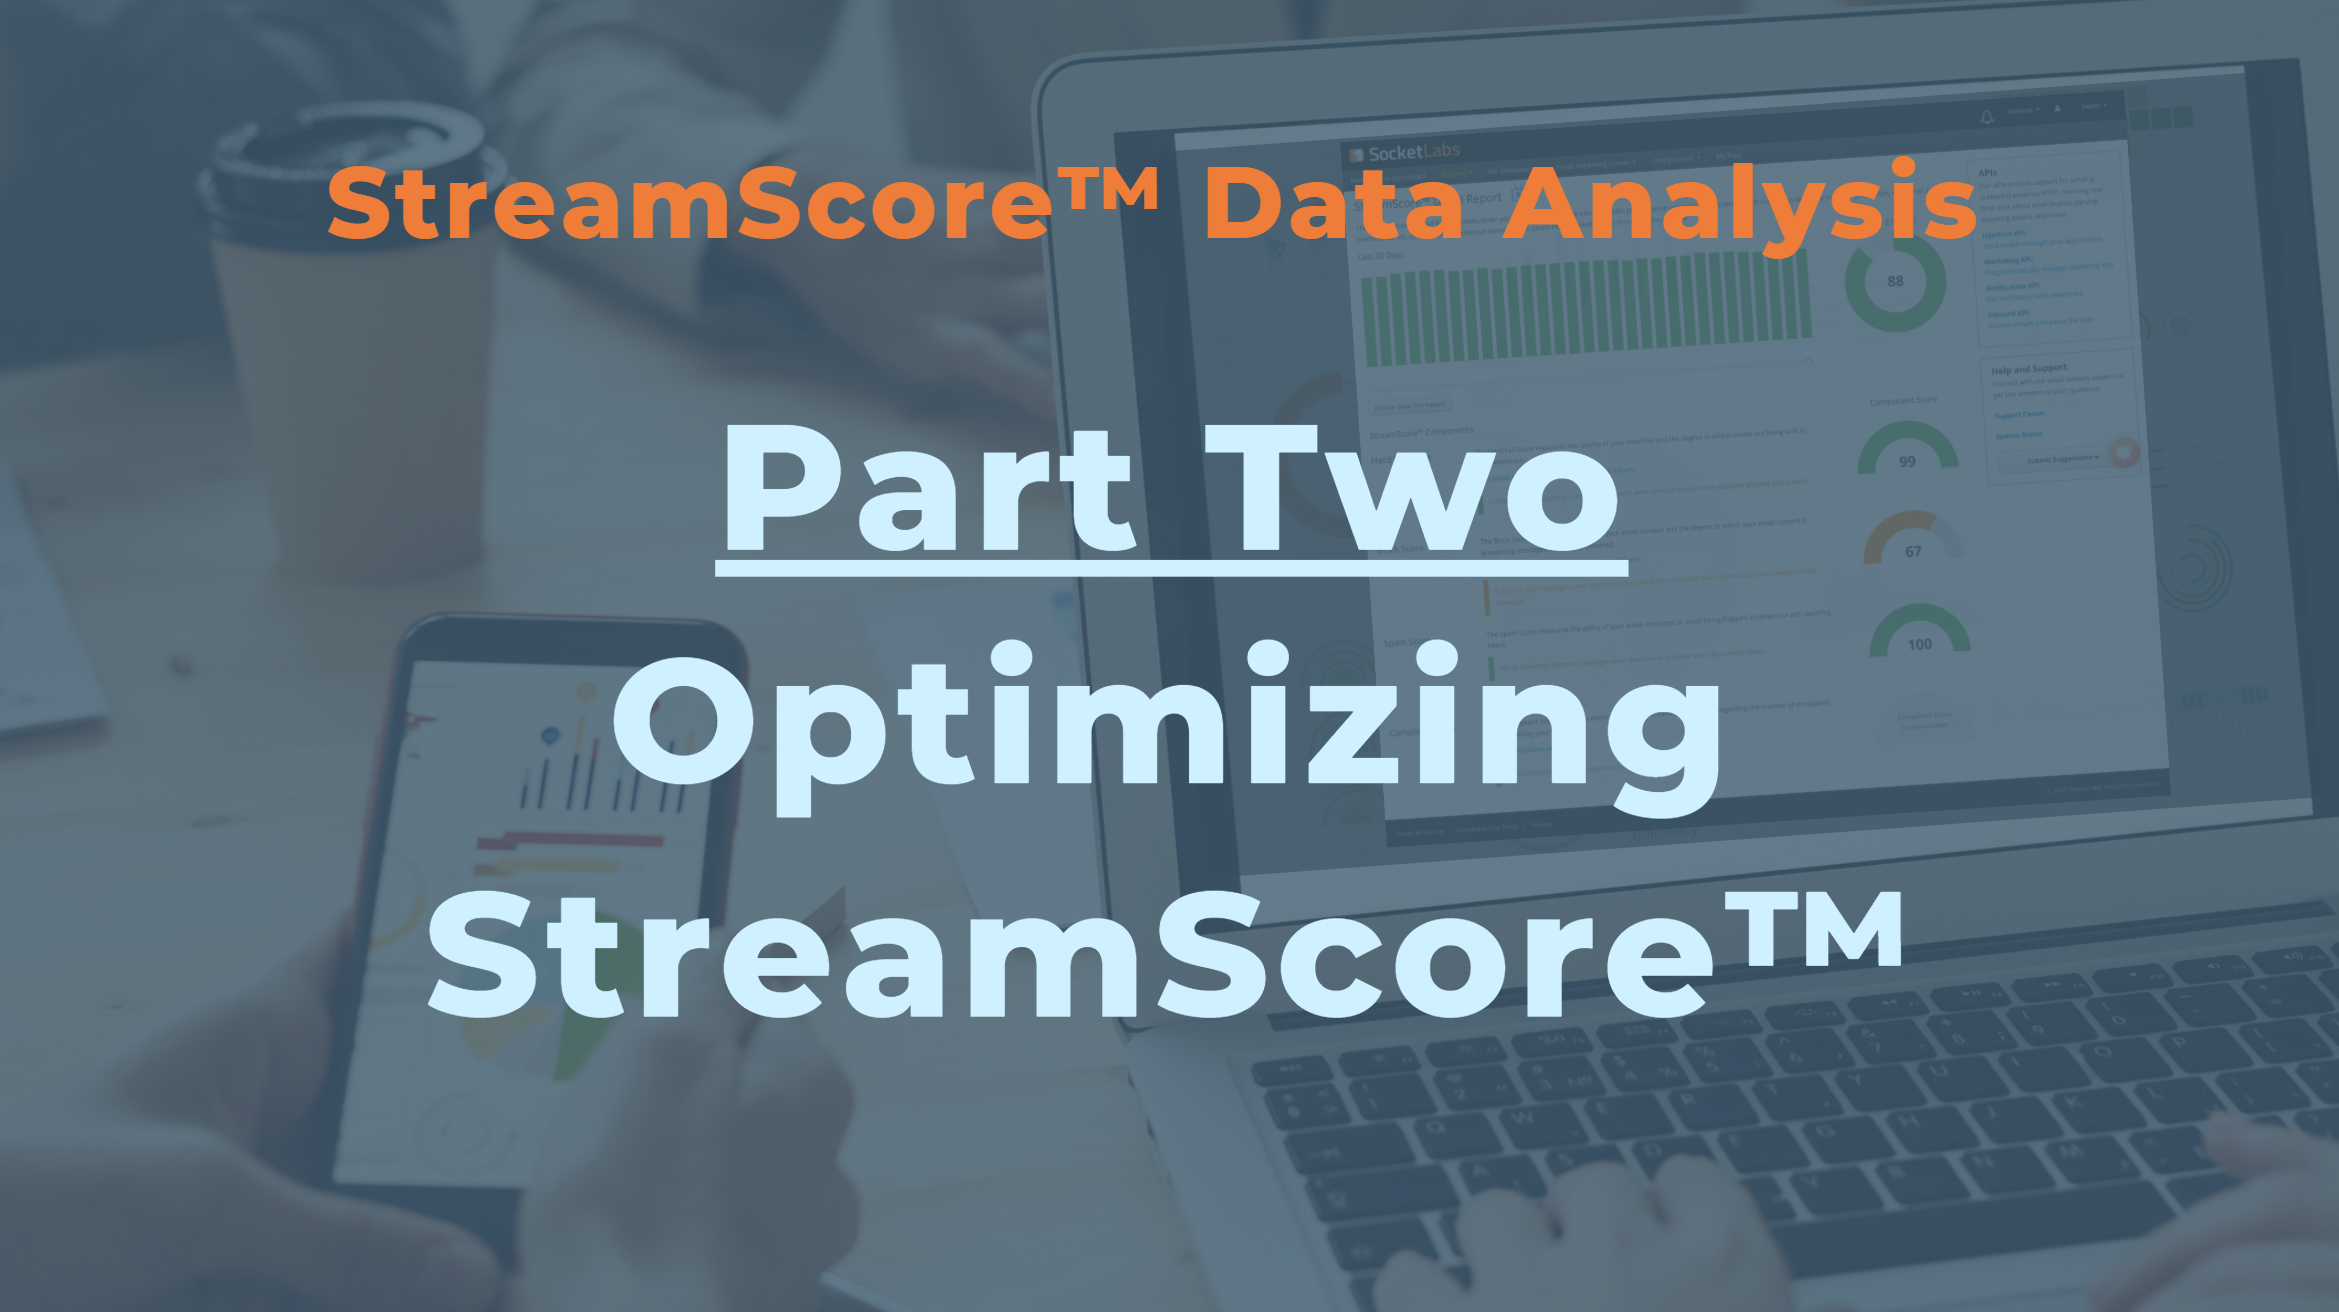 optimizing streamscore